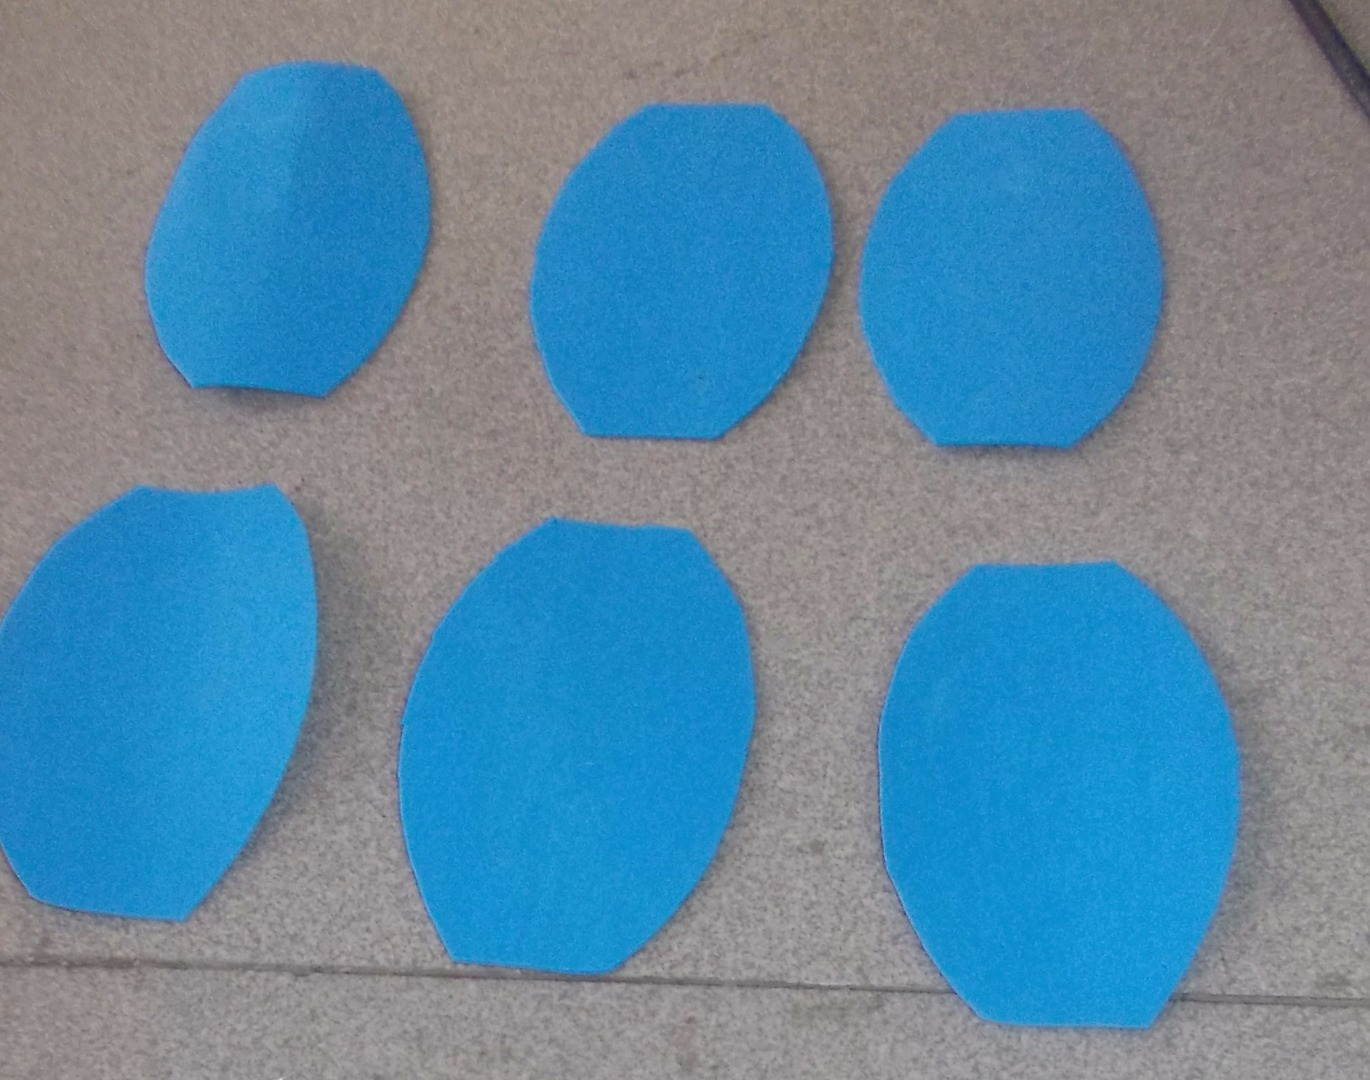 Picture of Cut 6 Petals on the Foam